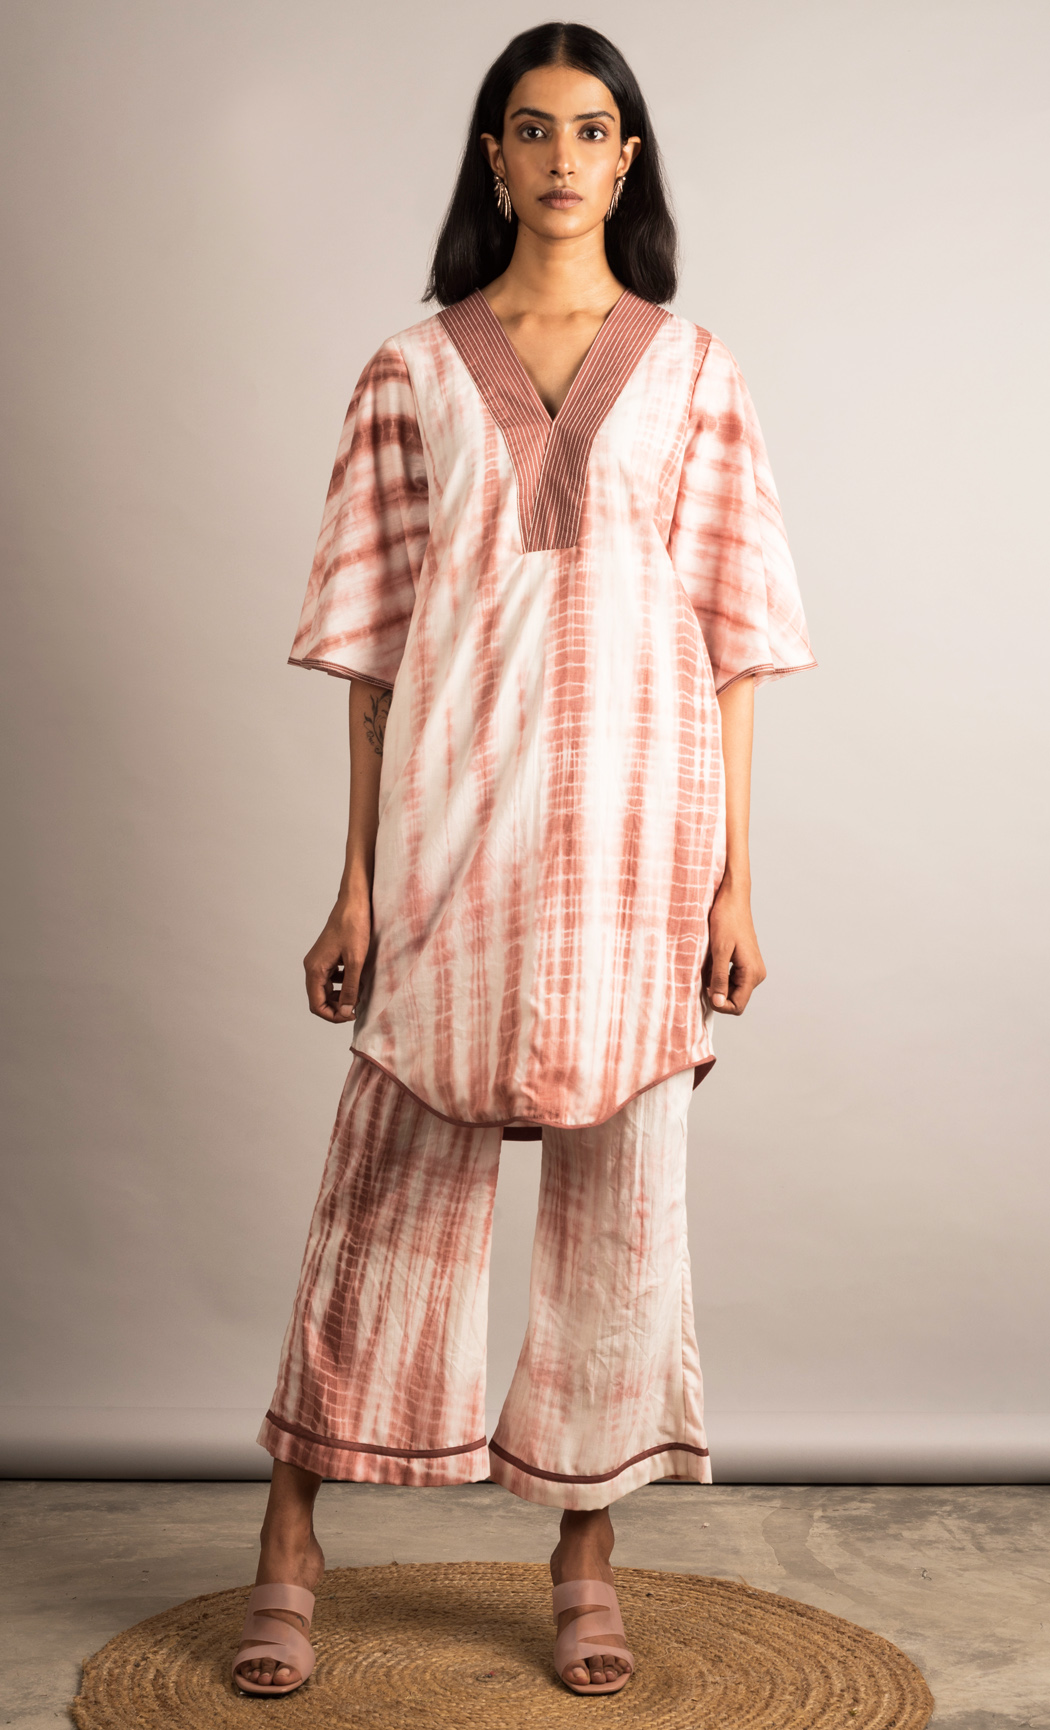 Off White and Brown Tie-dye Co-ord Set. Buy Online.